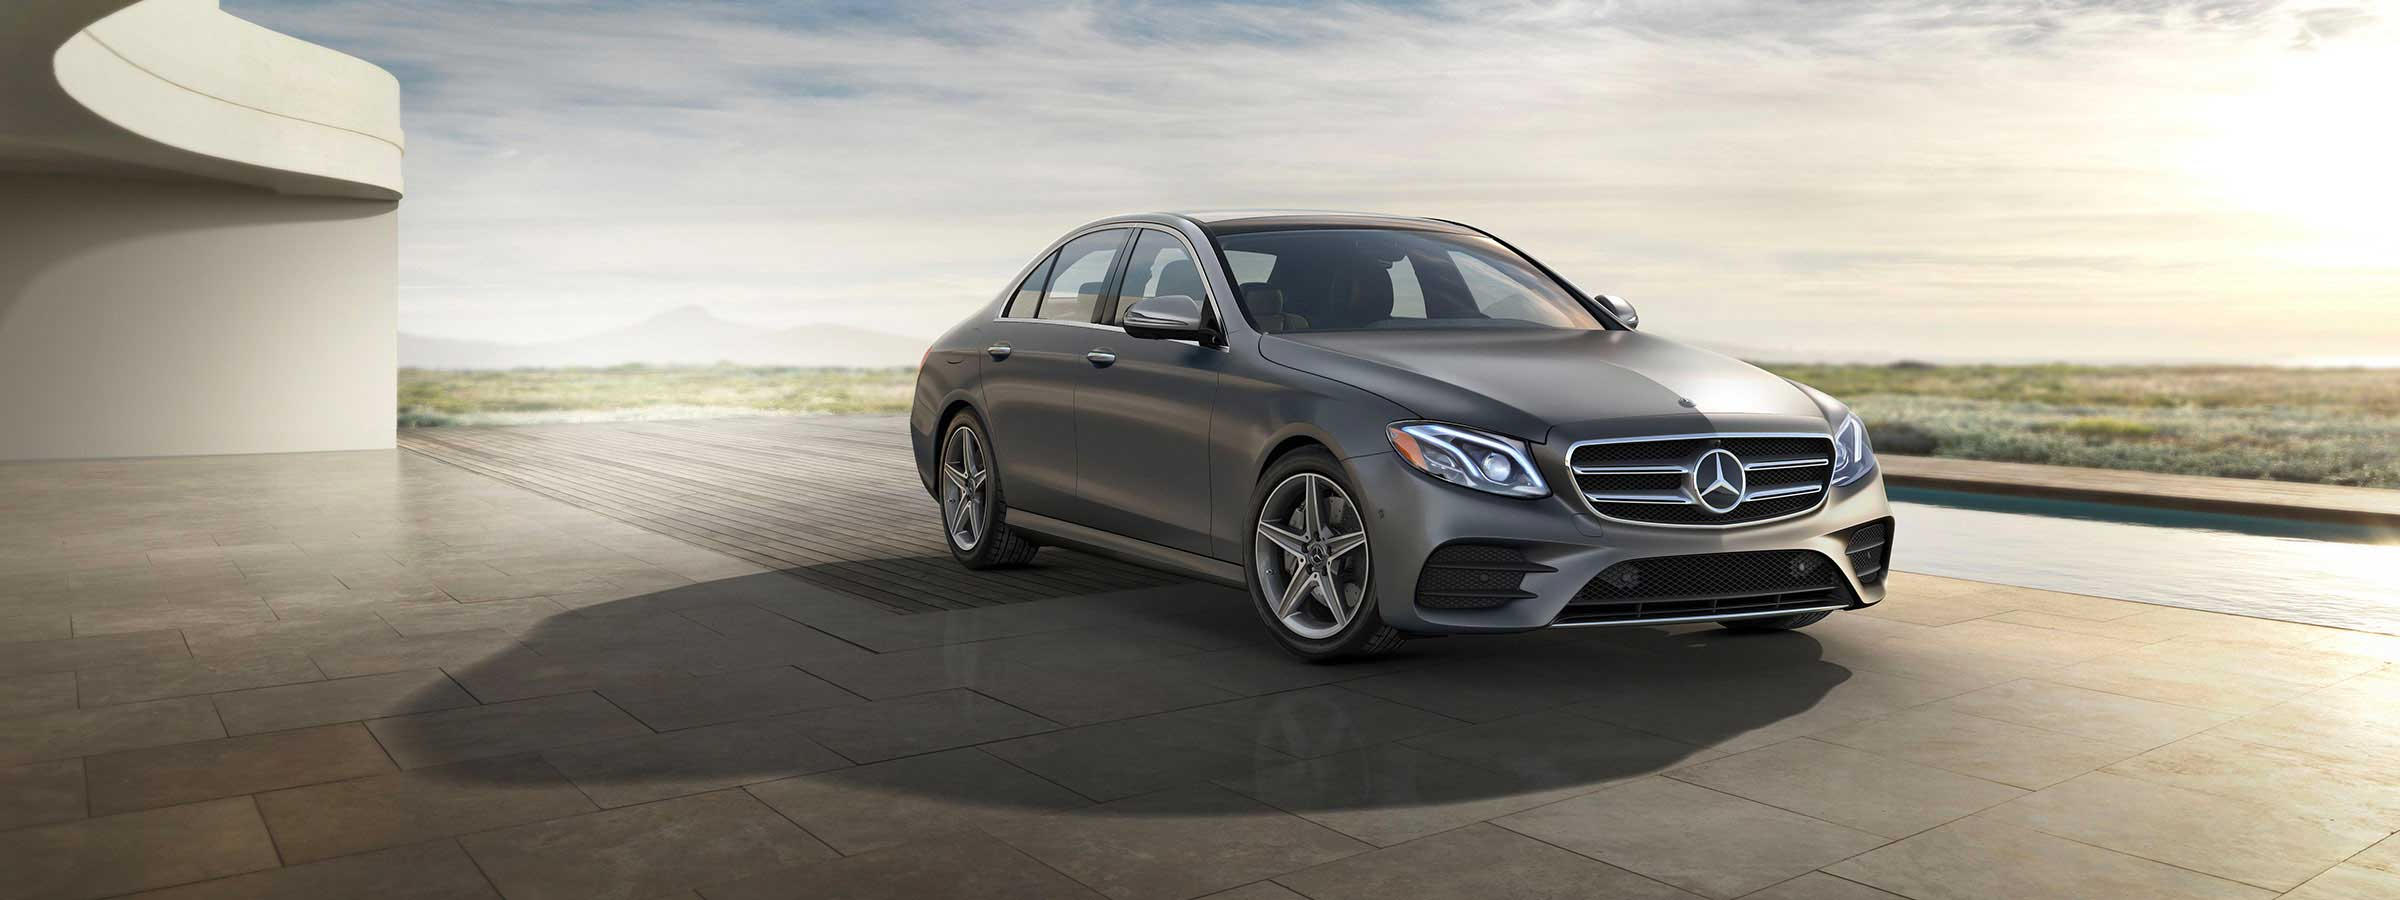 The 2019 E-Class Sedan